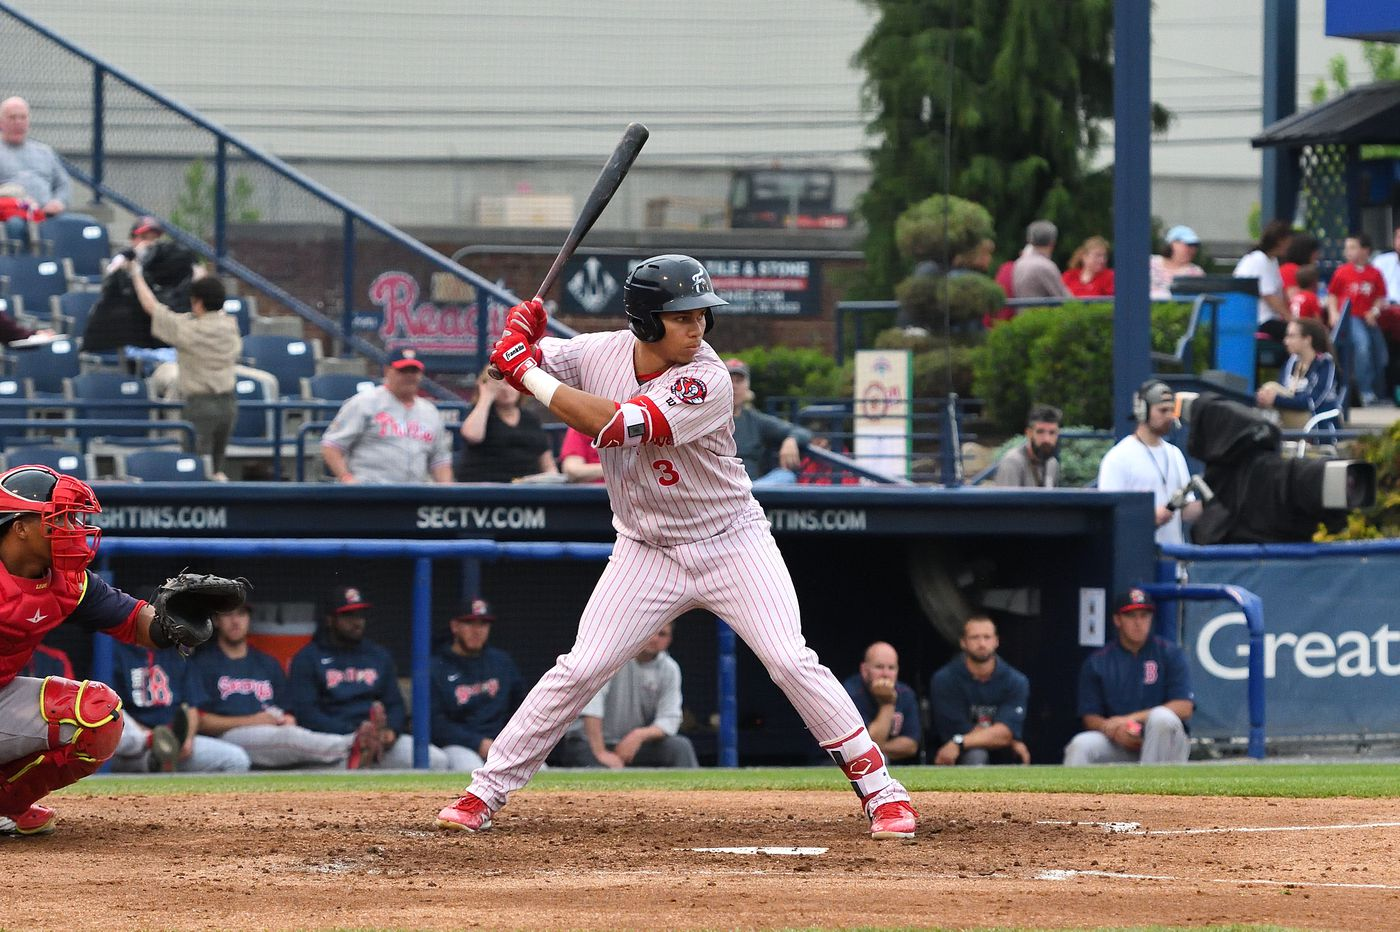 Phillies prospect Jan Hernandez hopes all-star selection puts him 'on the map'